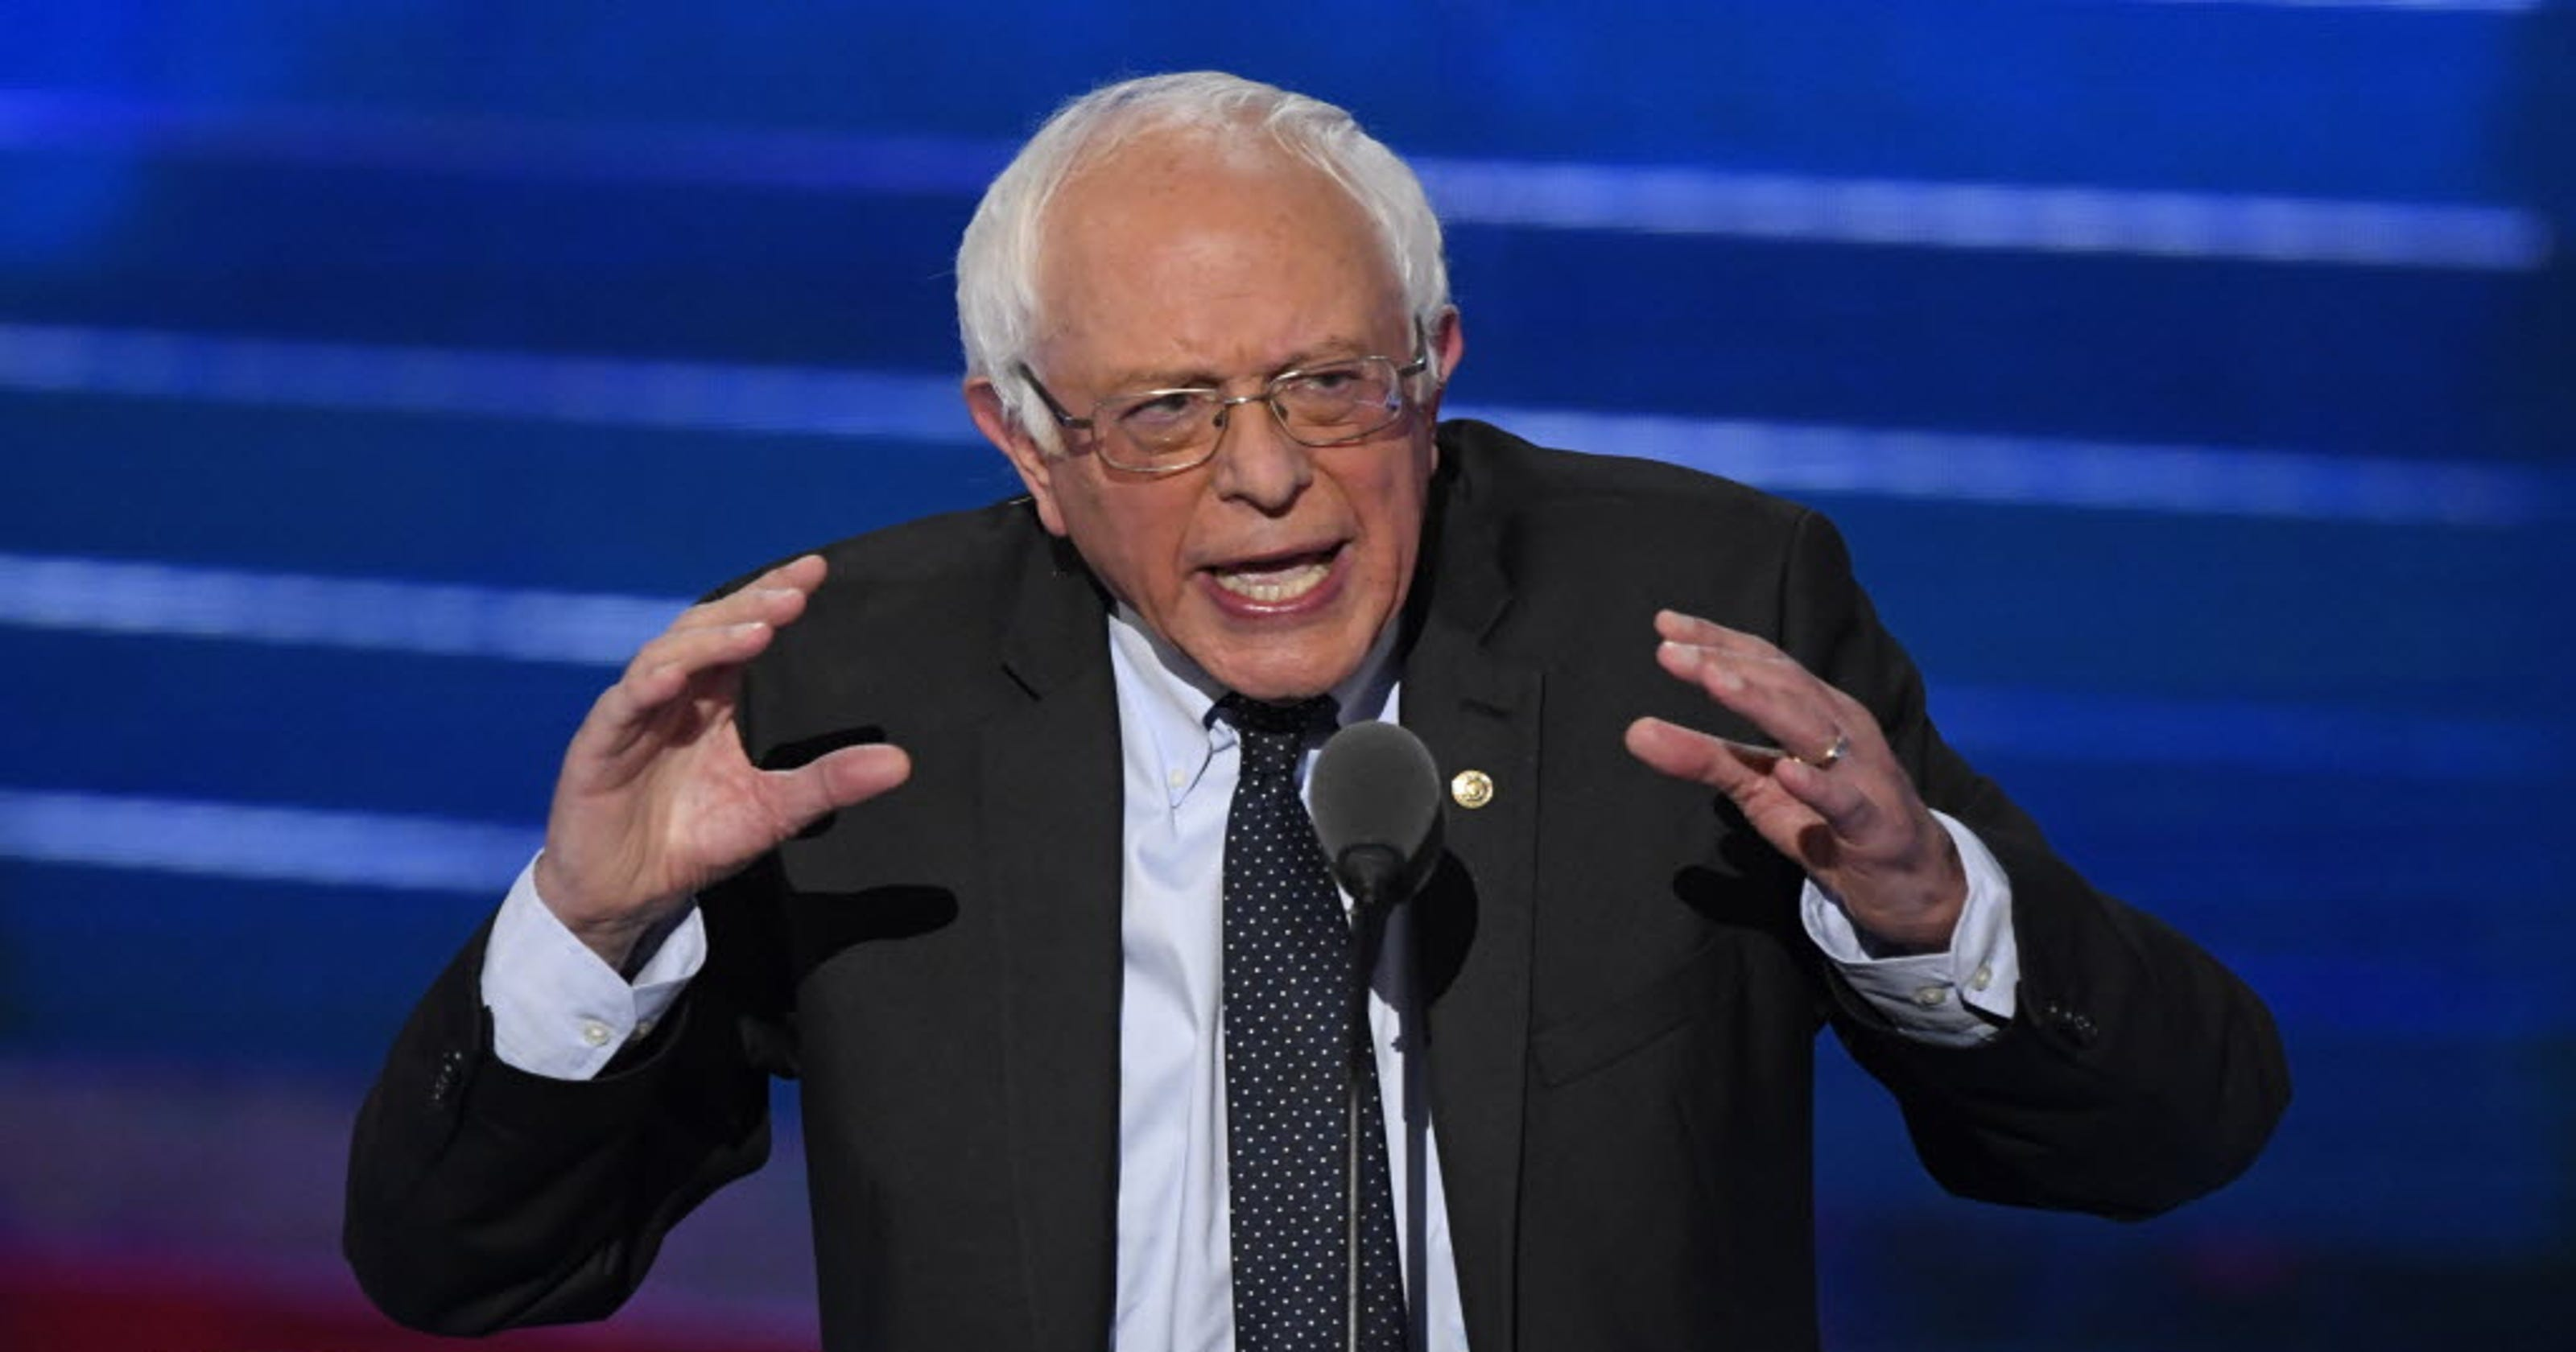 Hillary Clinton must become the next president,' Sanders